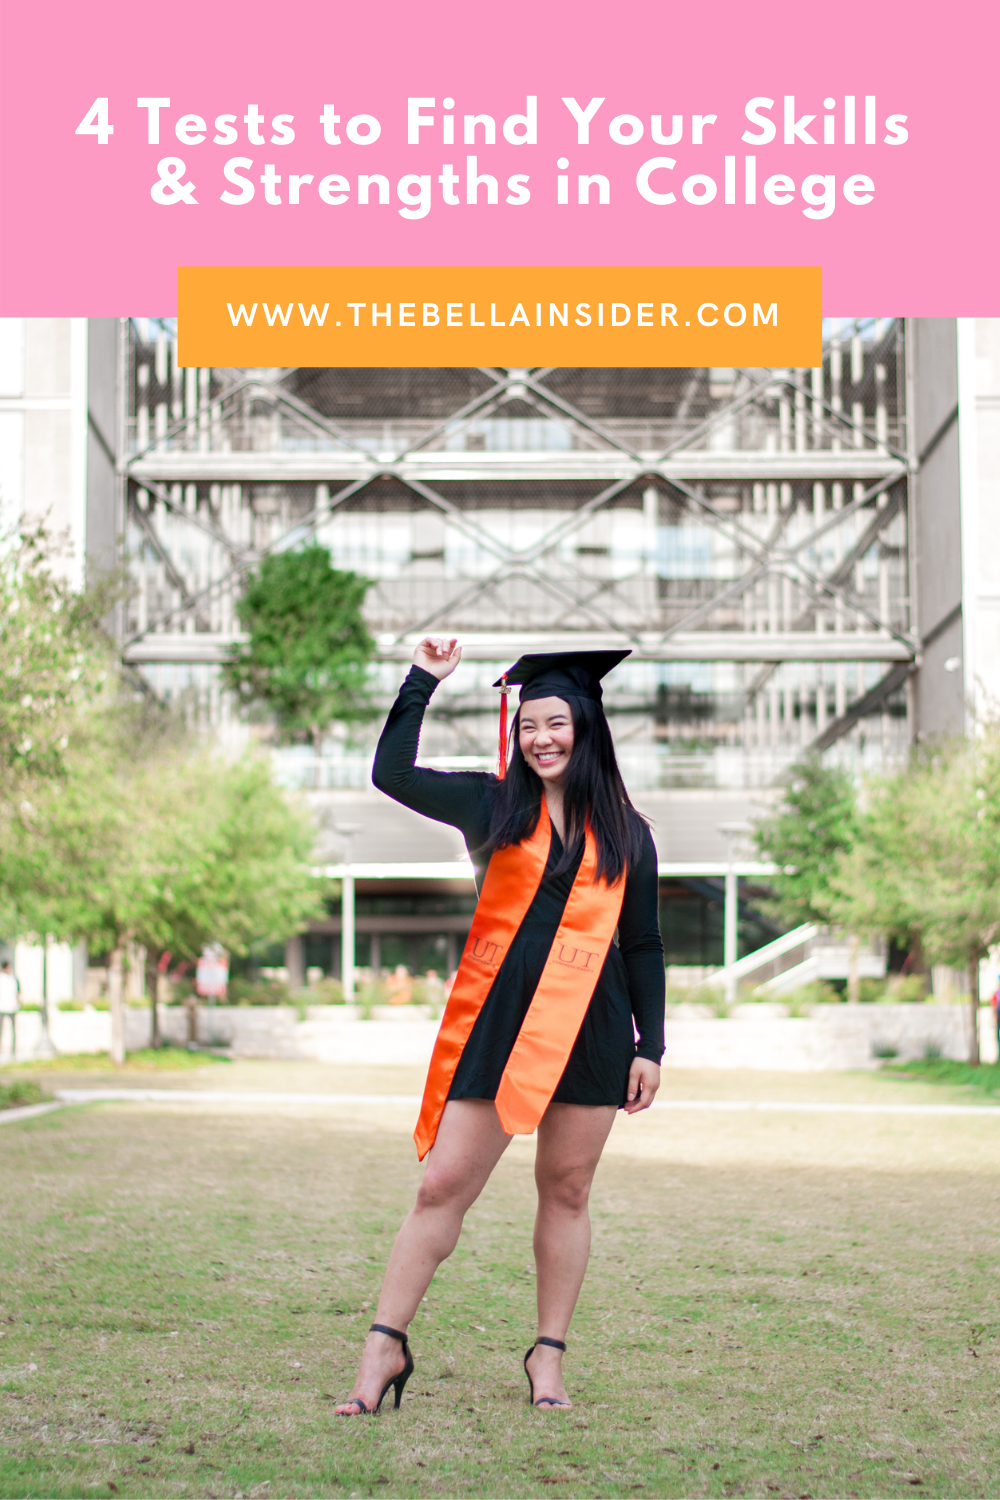 4 Tests to Find Your Skills & Strengths in College - TheBellaInsider.com